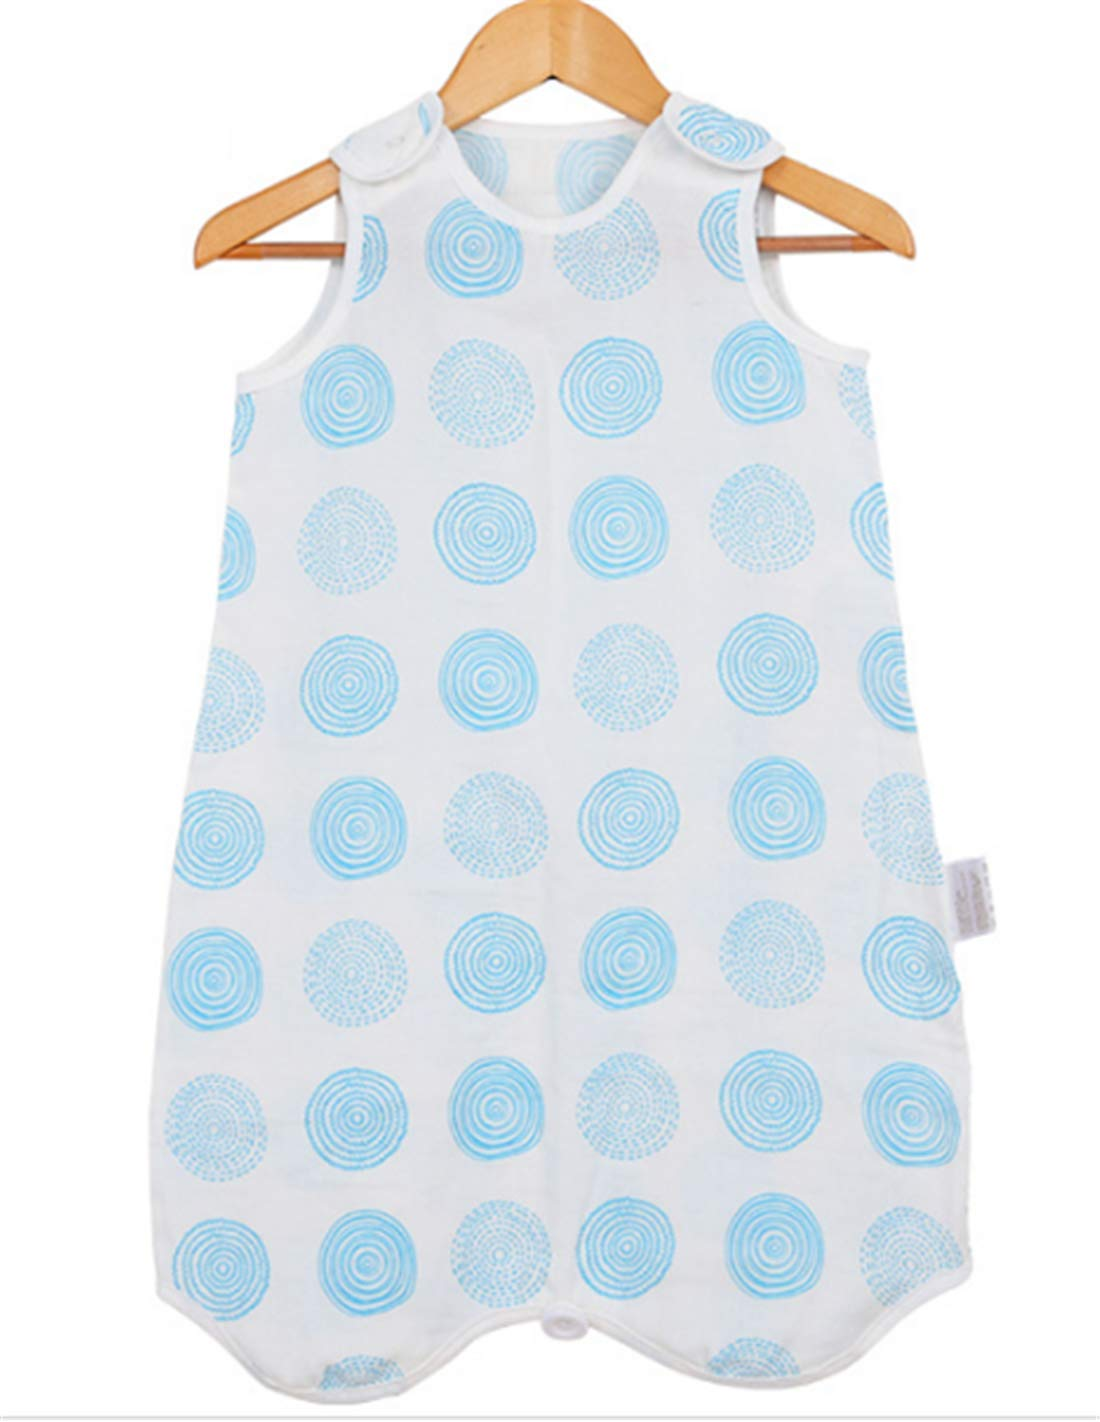 540d10f8abf4e0 Chilsuessy Baby Schlafsack Sommer Leichter Sommerschlafsack ohne Arm ...